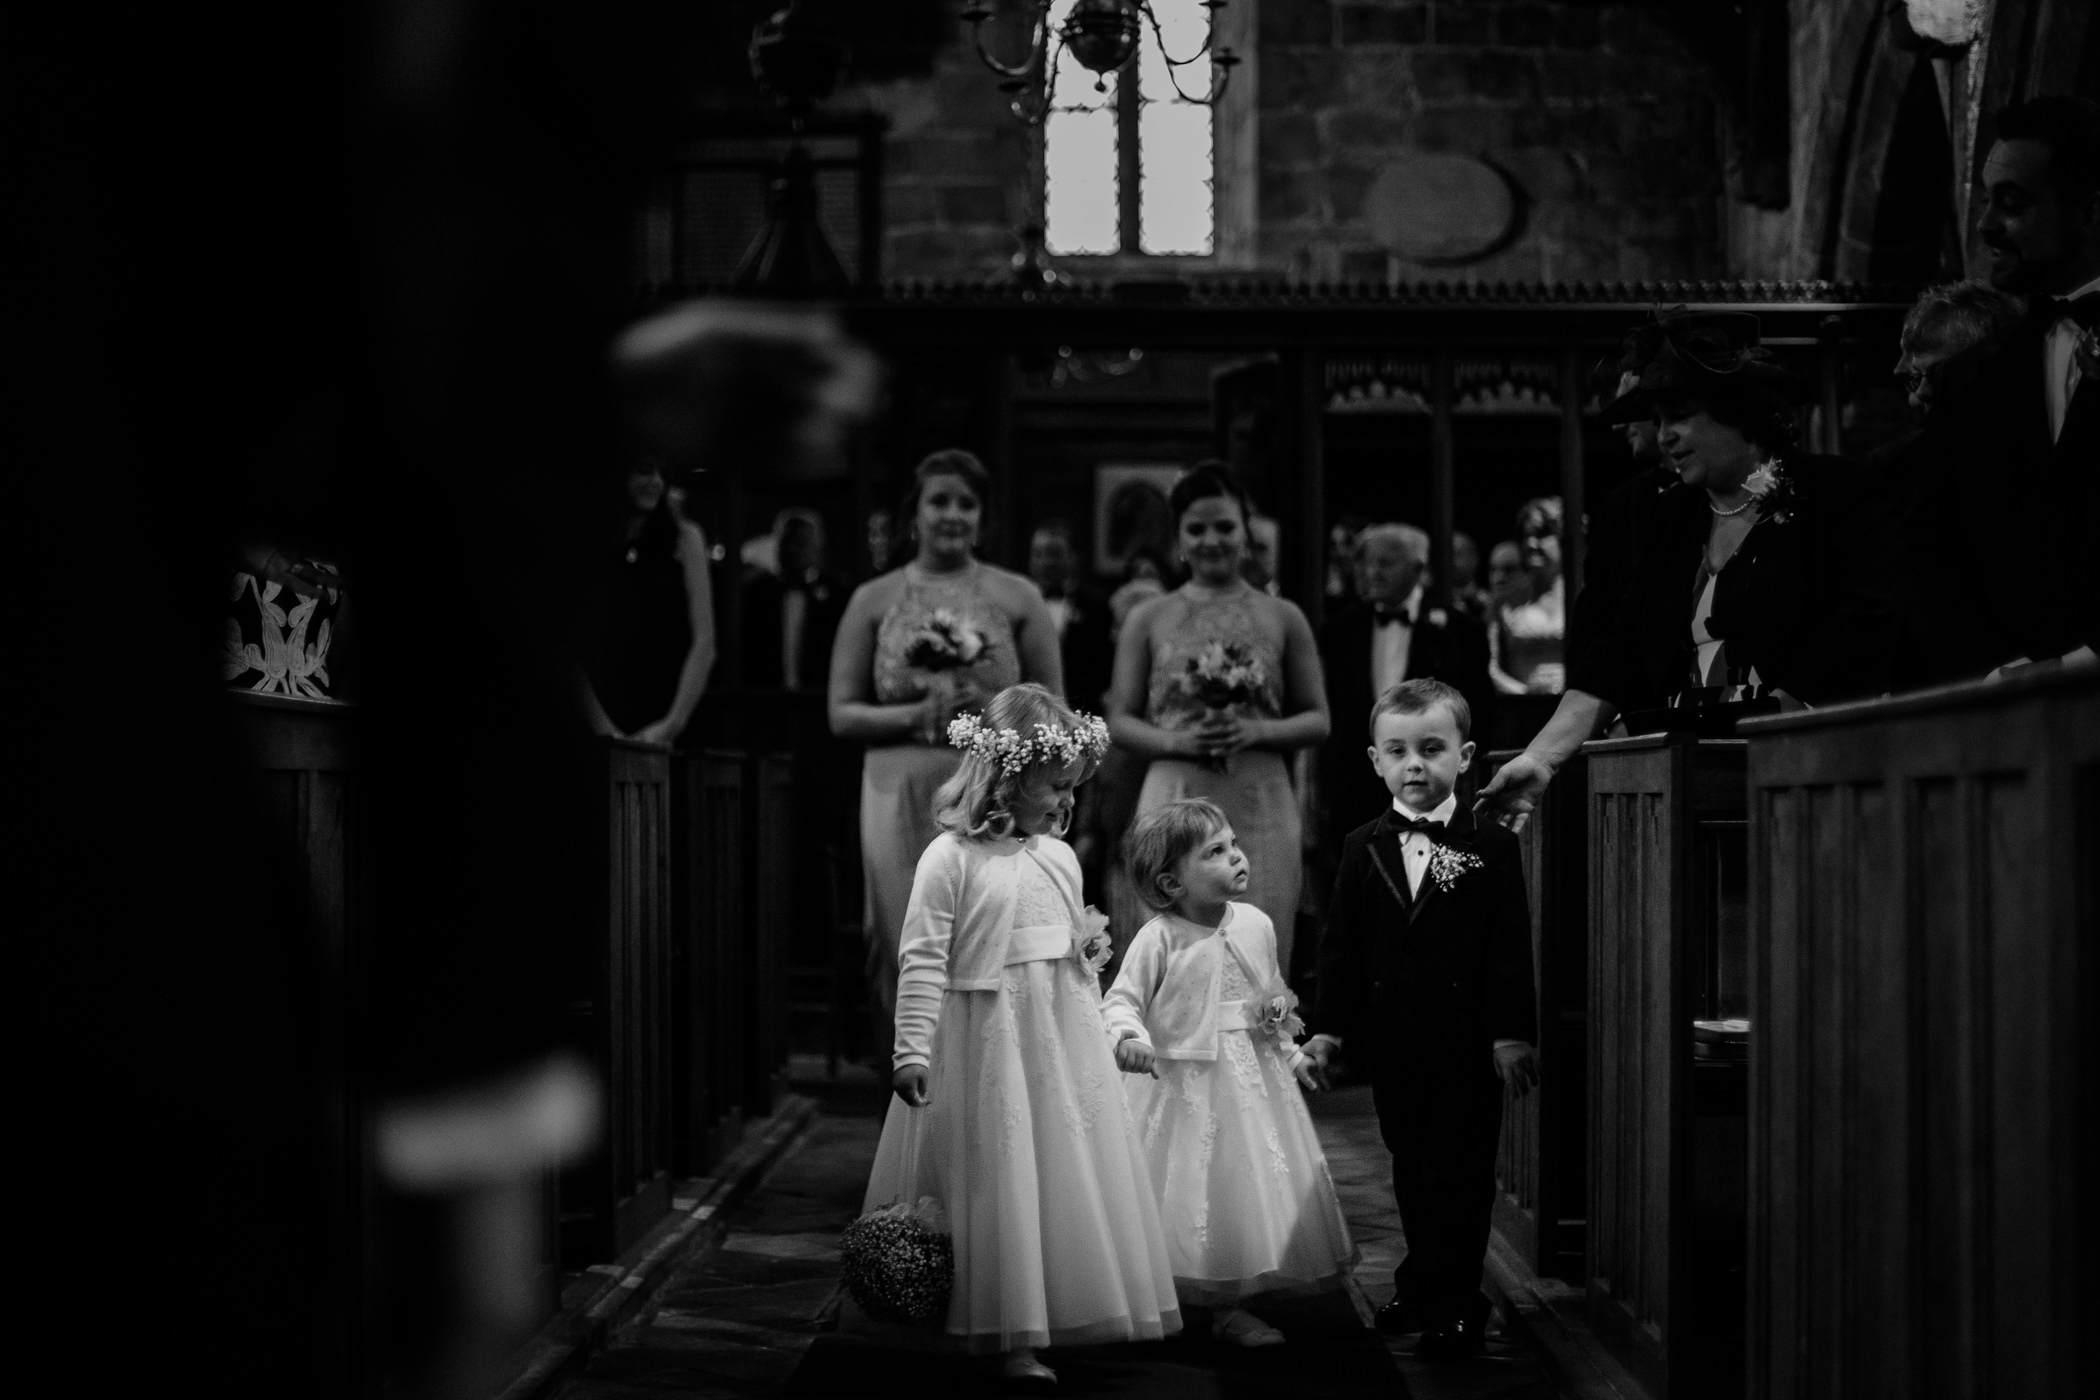 sansom-photography-becky-david-cheshire-wedding-25